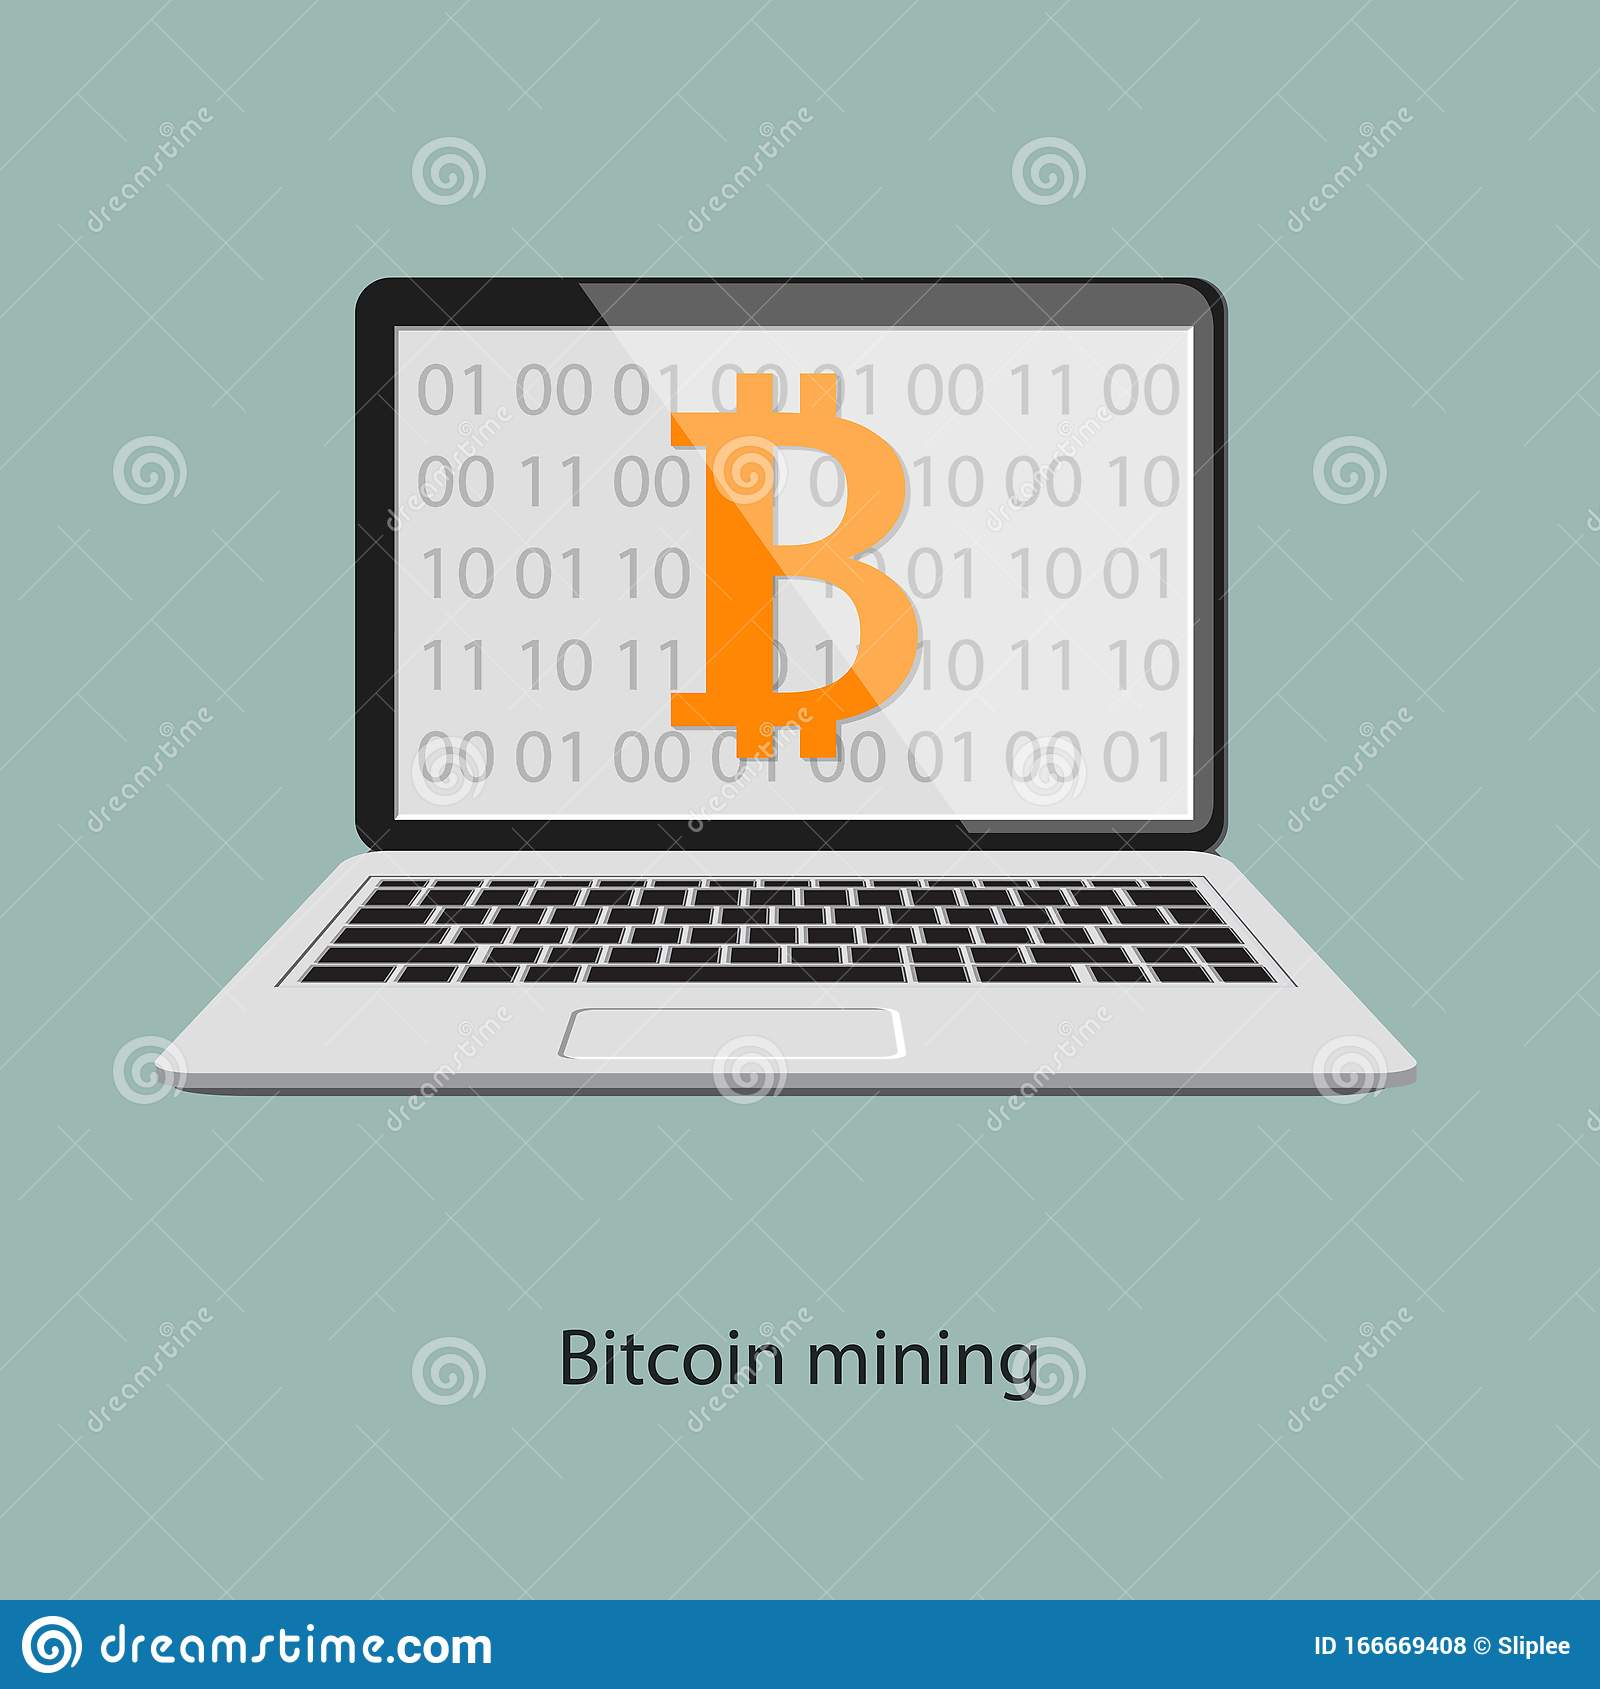 cryptocurrency mining on laptop